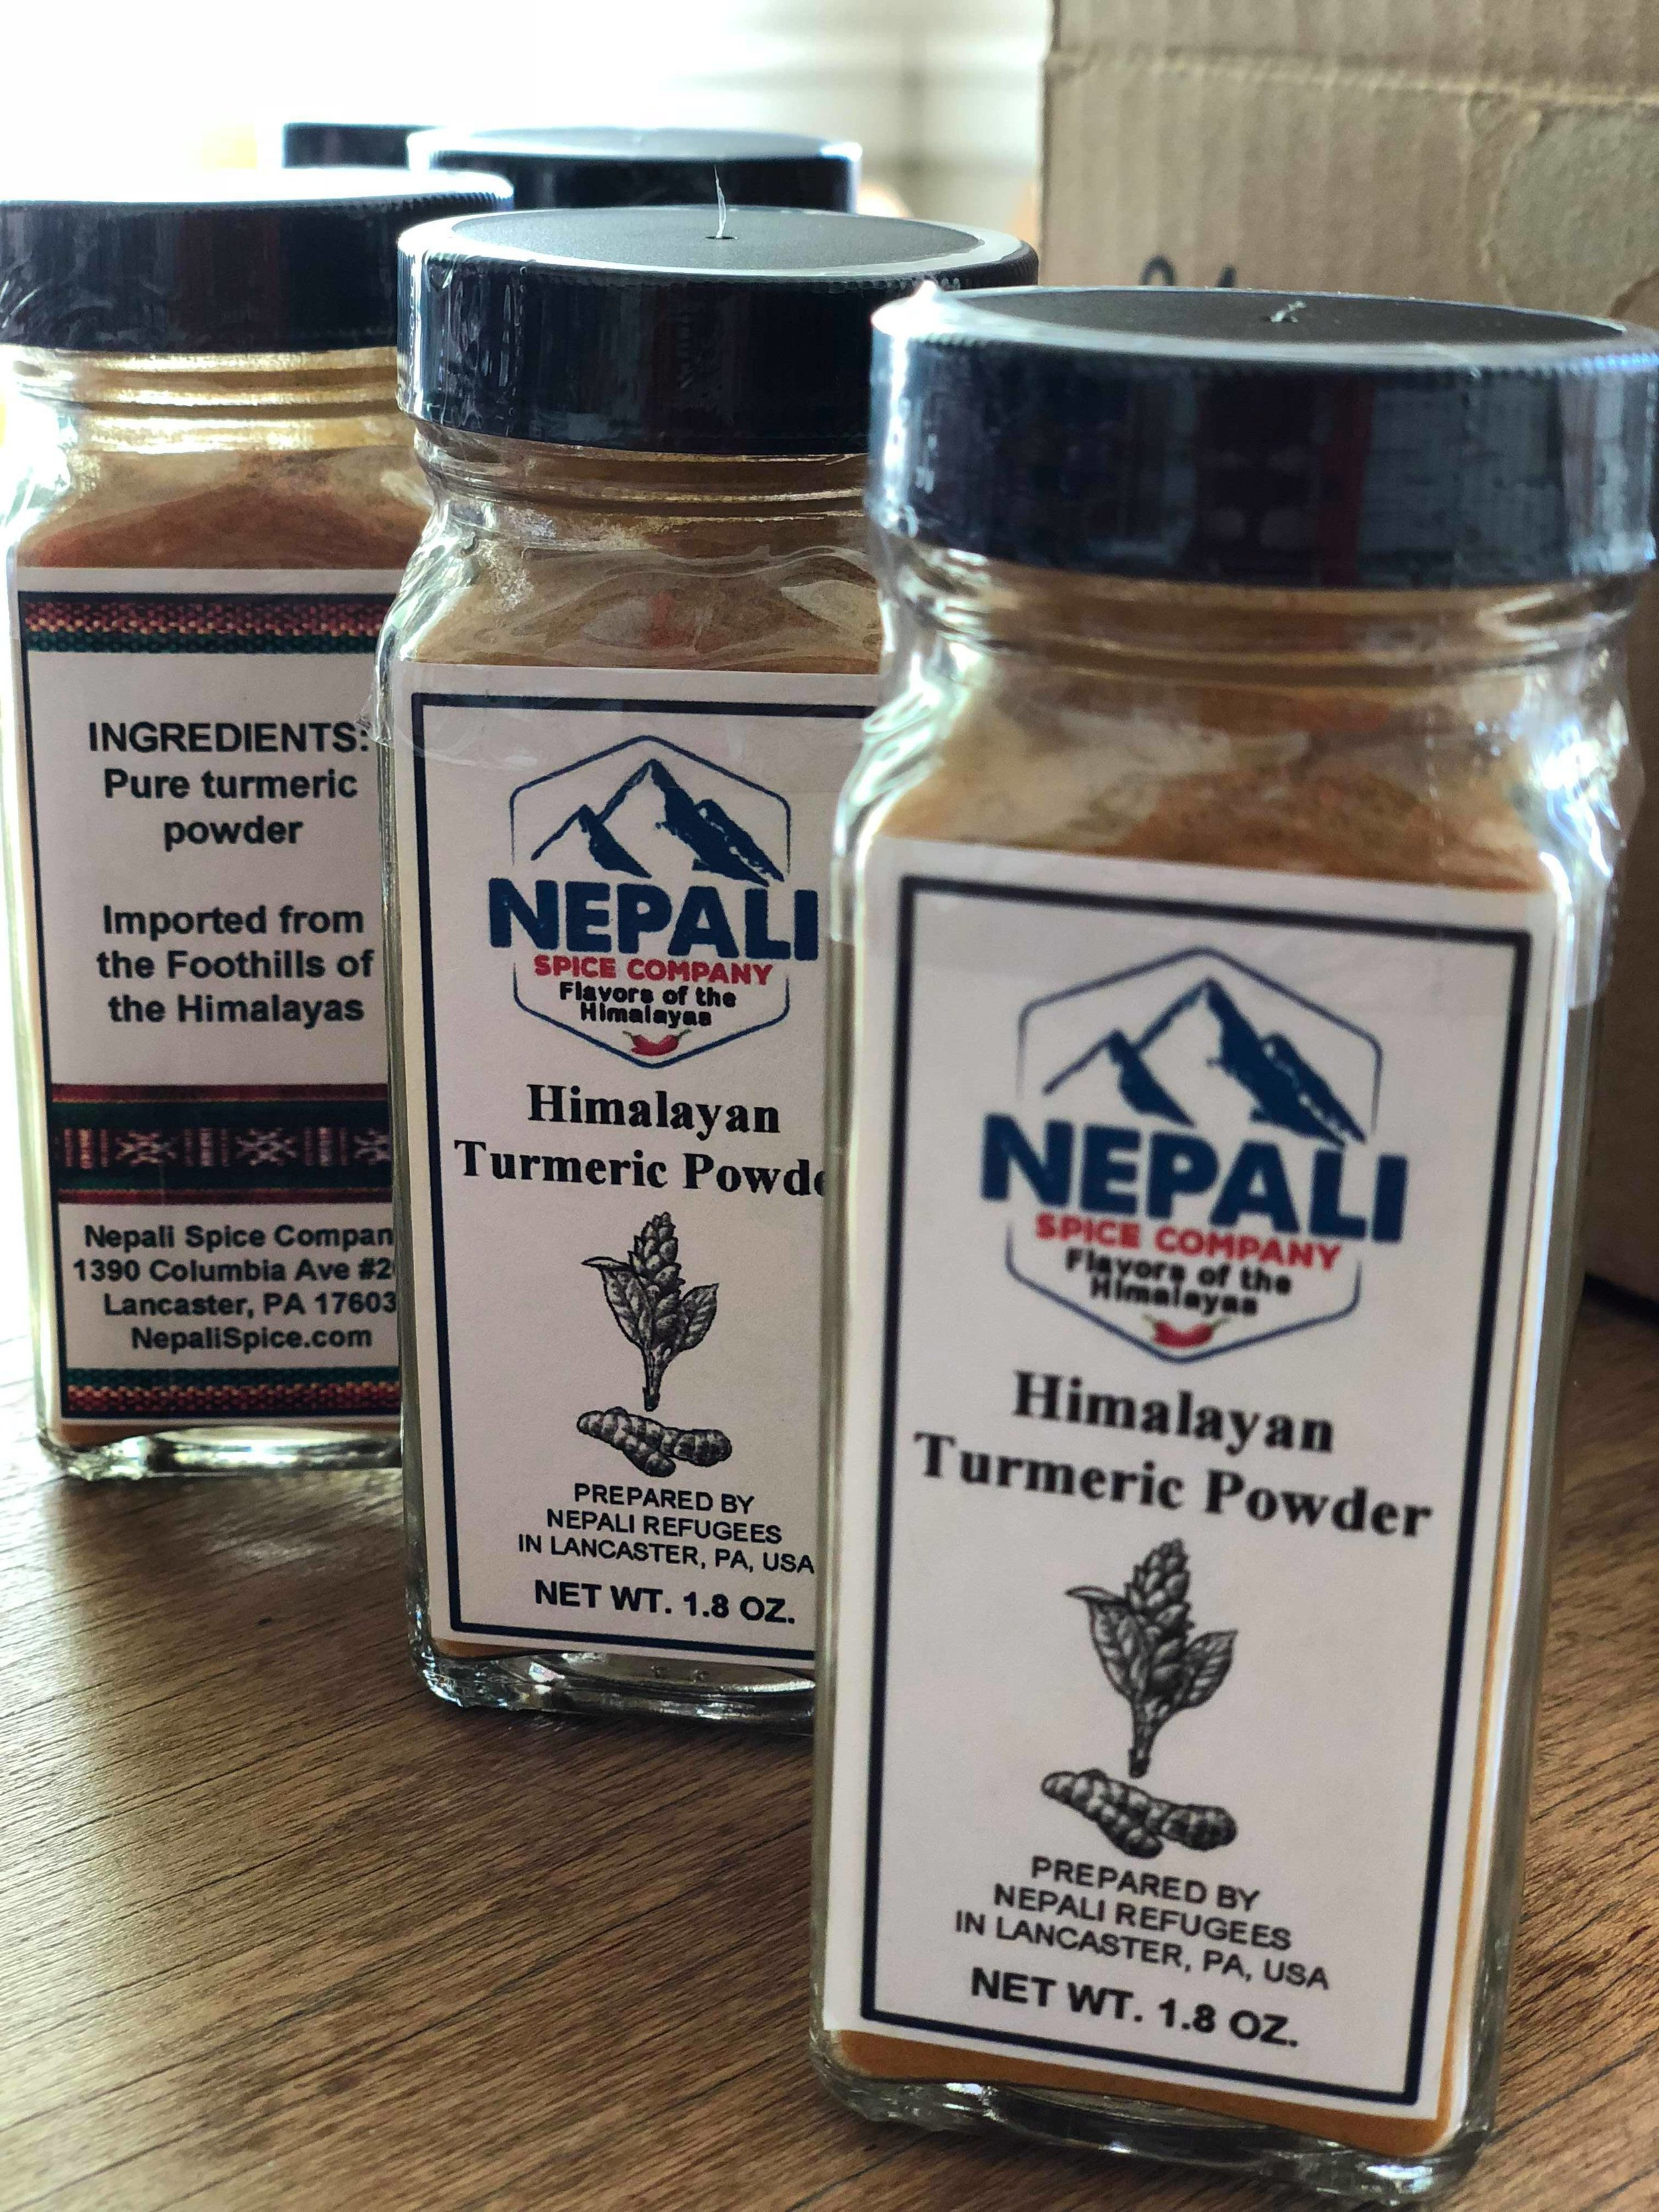 Turmeric's mild, warm, and peppery taste is commonly used for vegetable sautés, rice, soups, tea, smoothies, and even eggs. It is a key ingredient in curry and other southern Asian cuisines. Turmeric also contains special medicinal value and is traditionally used in Ayurvedic medicine for many conditions, such as asthma, rheumatologic conditions, pain, and fatigue. Today, it is also commonly used as a dietary supplement for inflammation, arthritis, stomach, skin, liver, and gallbladder problems, and cancer.  Turmeric's underground stems (rhizomes) are dried and made into capsules, tablets, teas, or extracts.  Turmeric grows in southern Asia and Central America. We offer ground turmeric, sourced from the foothills of the Himalayas in Nepal.